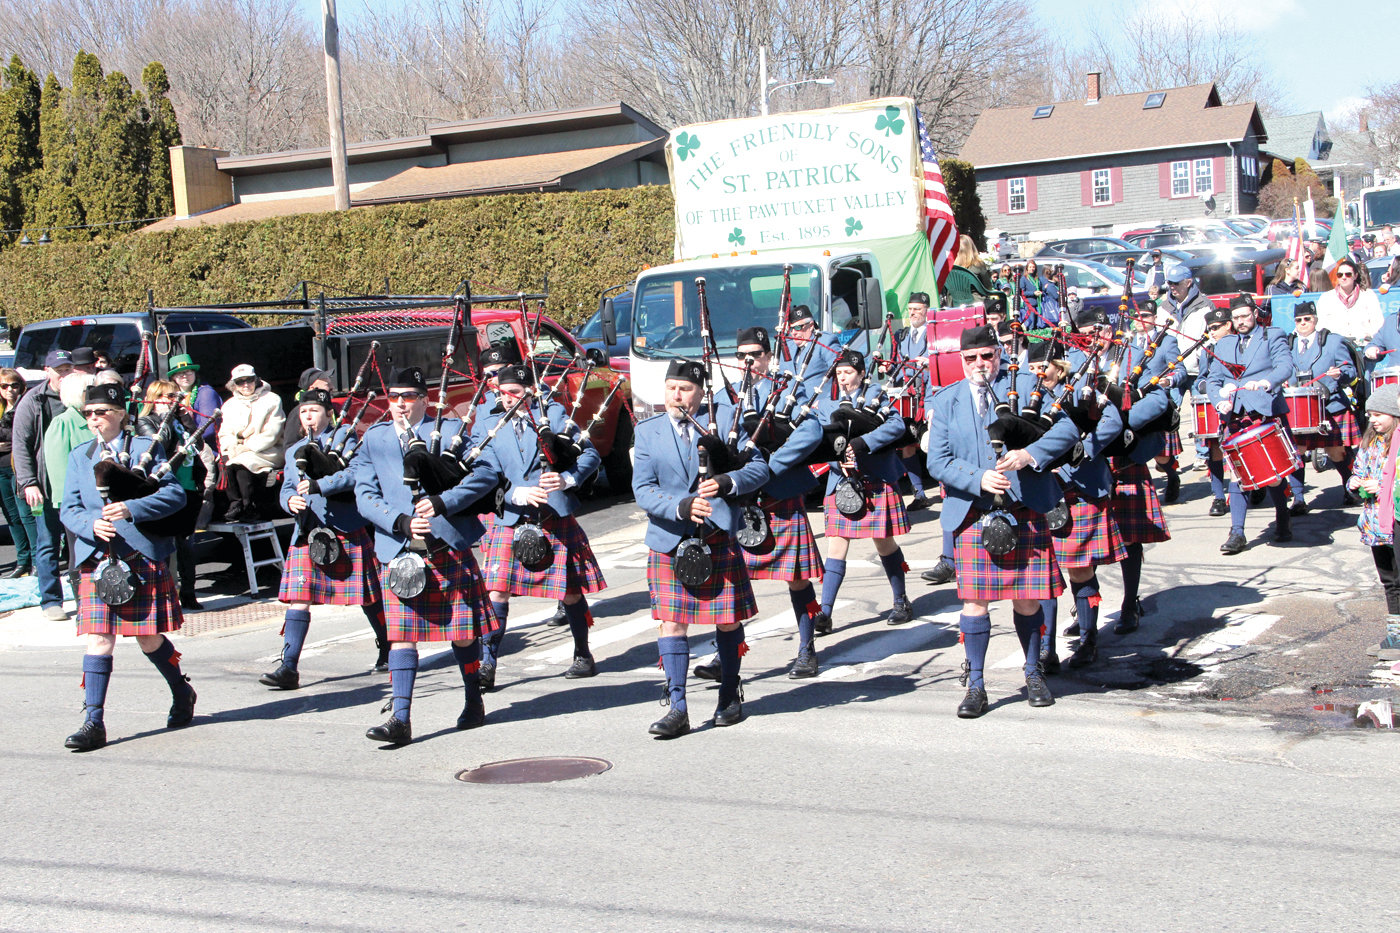 NOW THAT'S SOMETHING TO CELEBRATE: Last year's West Warwick St. Patrick's Day Parade was blessed with sunny and unusually warm weather.